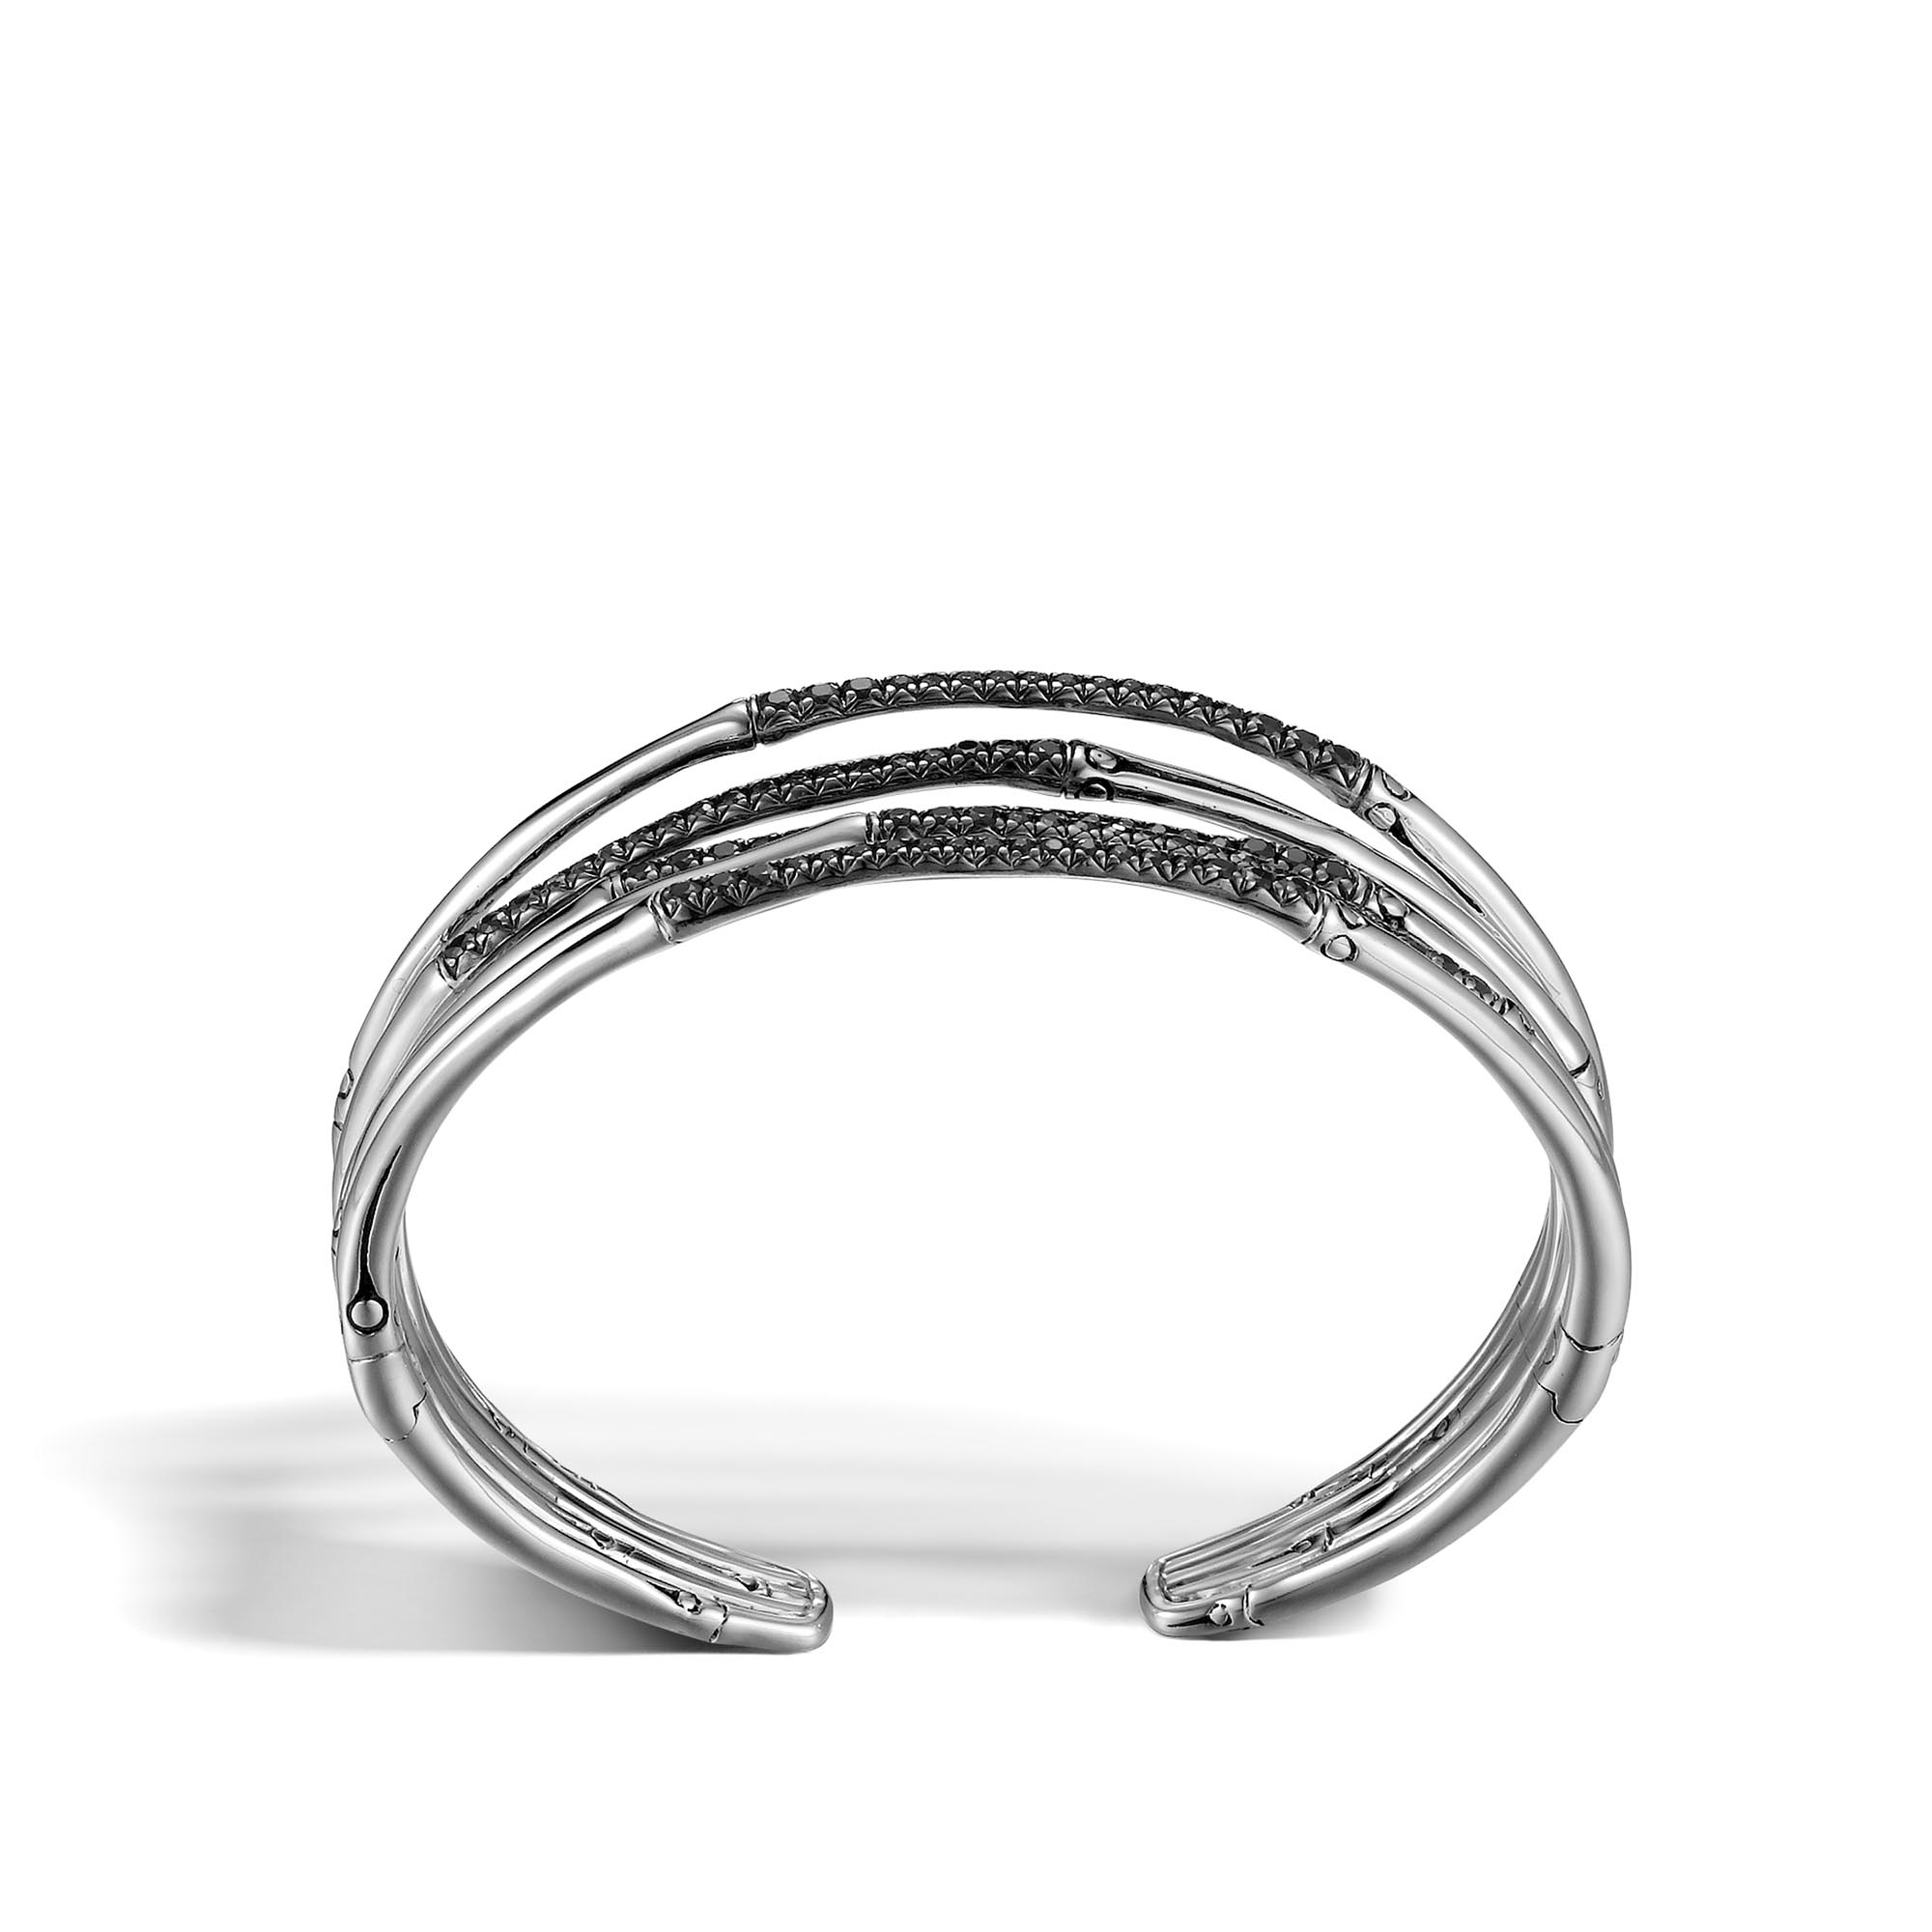 Bamboo 19MM Cuff in Silver with Gemstone, Black Sapphire, large